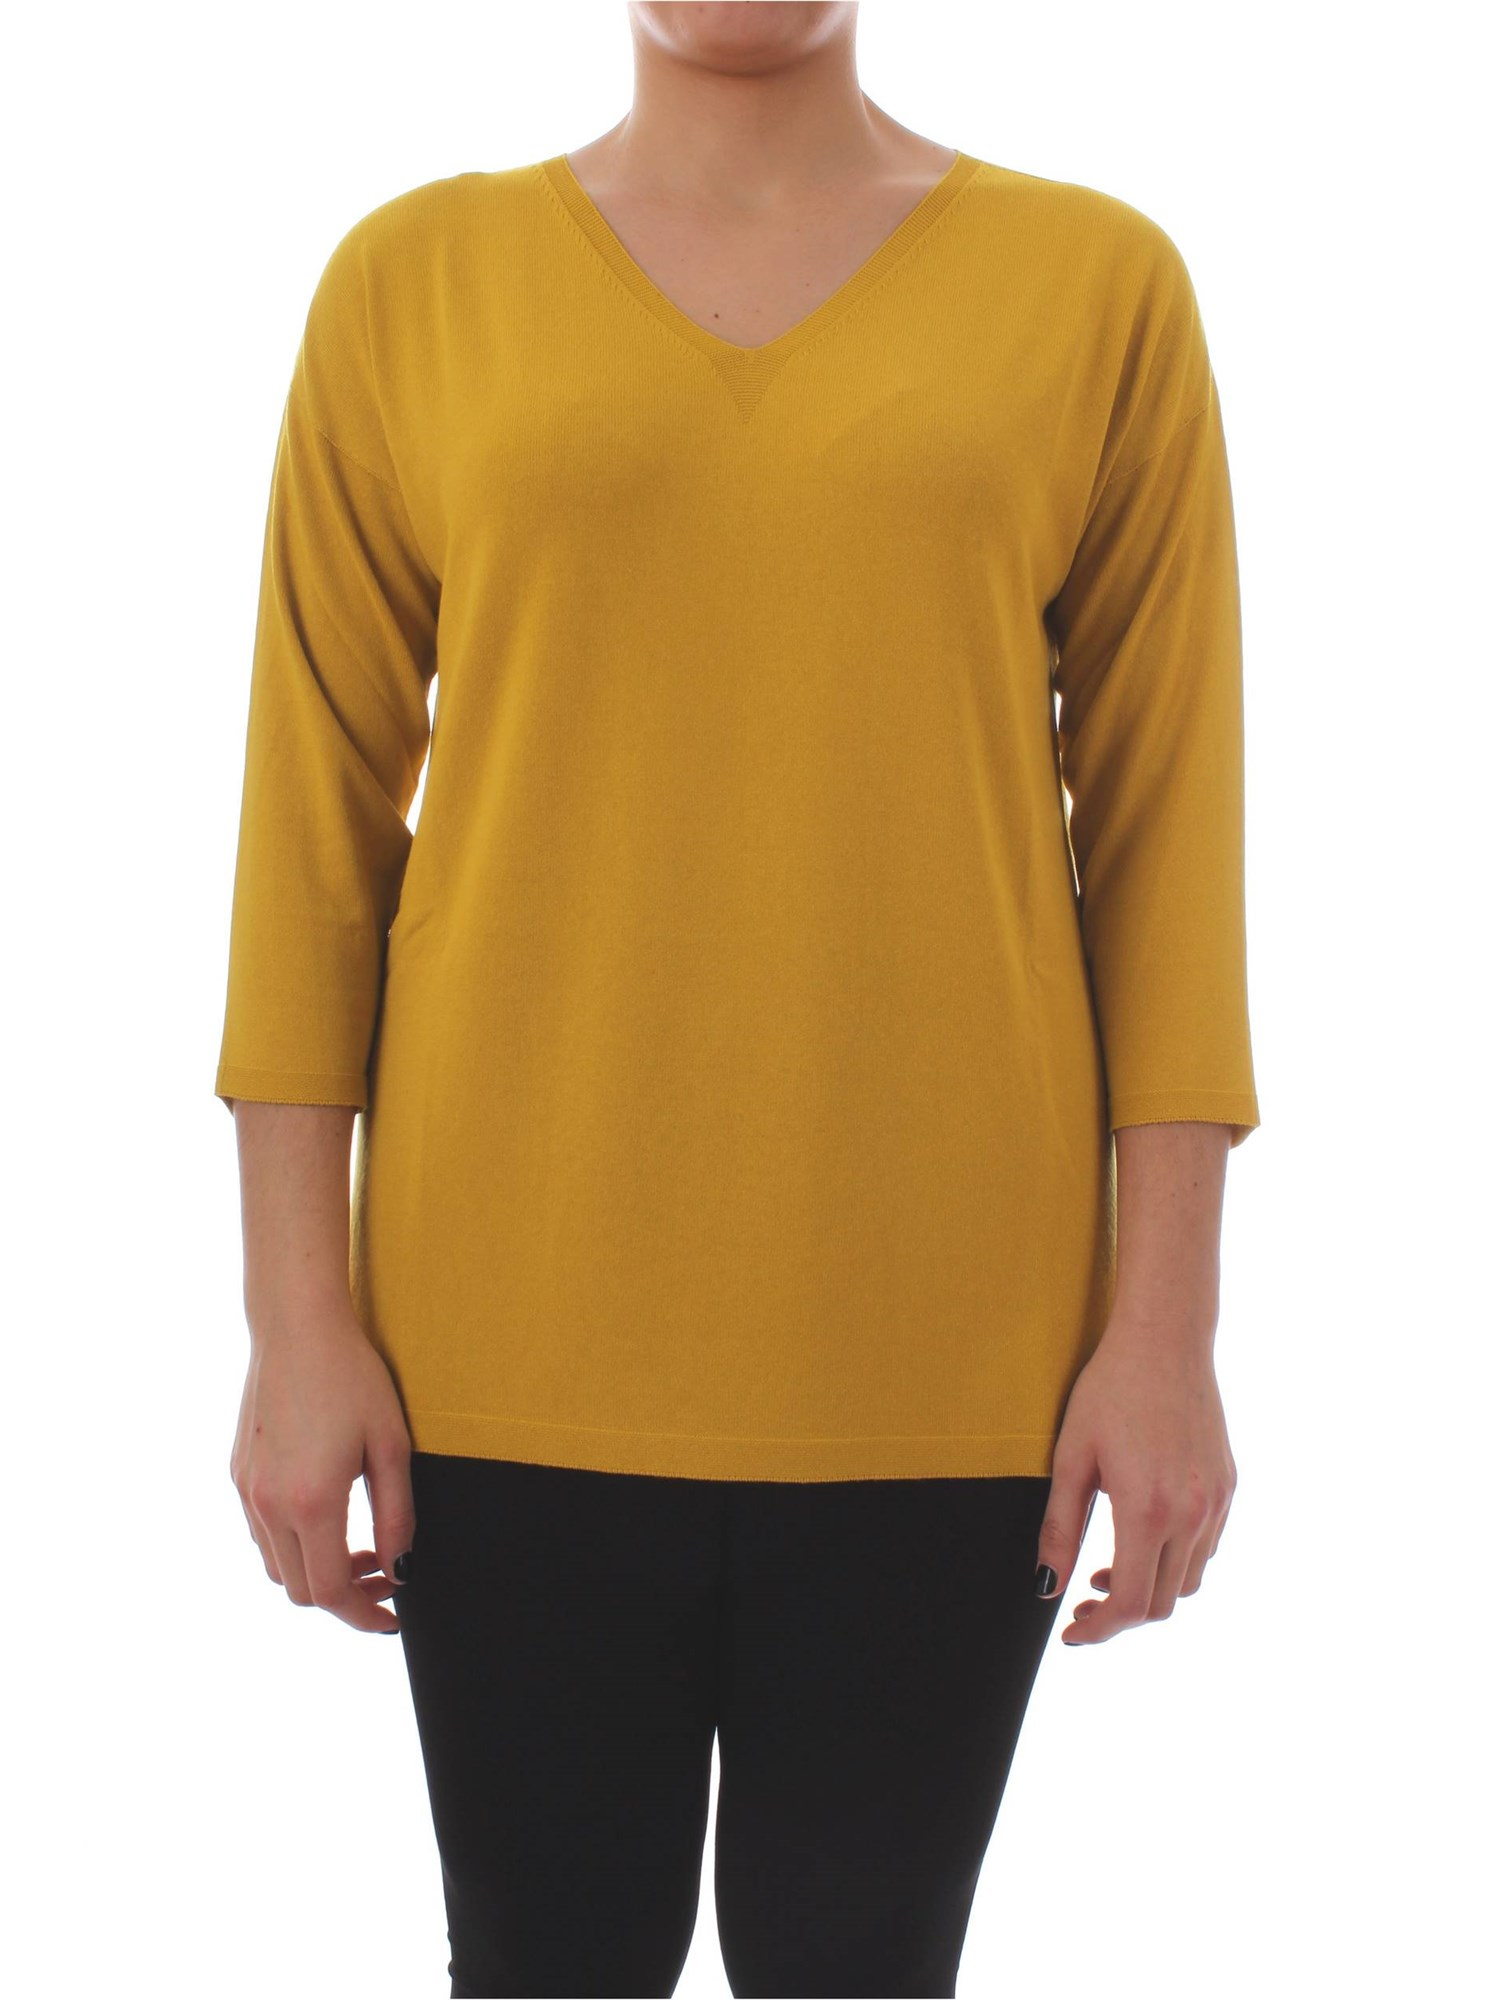 70c12ef7c67 Jumper Persona By Marina Rinaldi Woman - Yellow - Buy Jumper On line ...